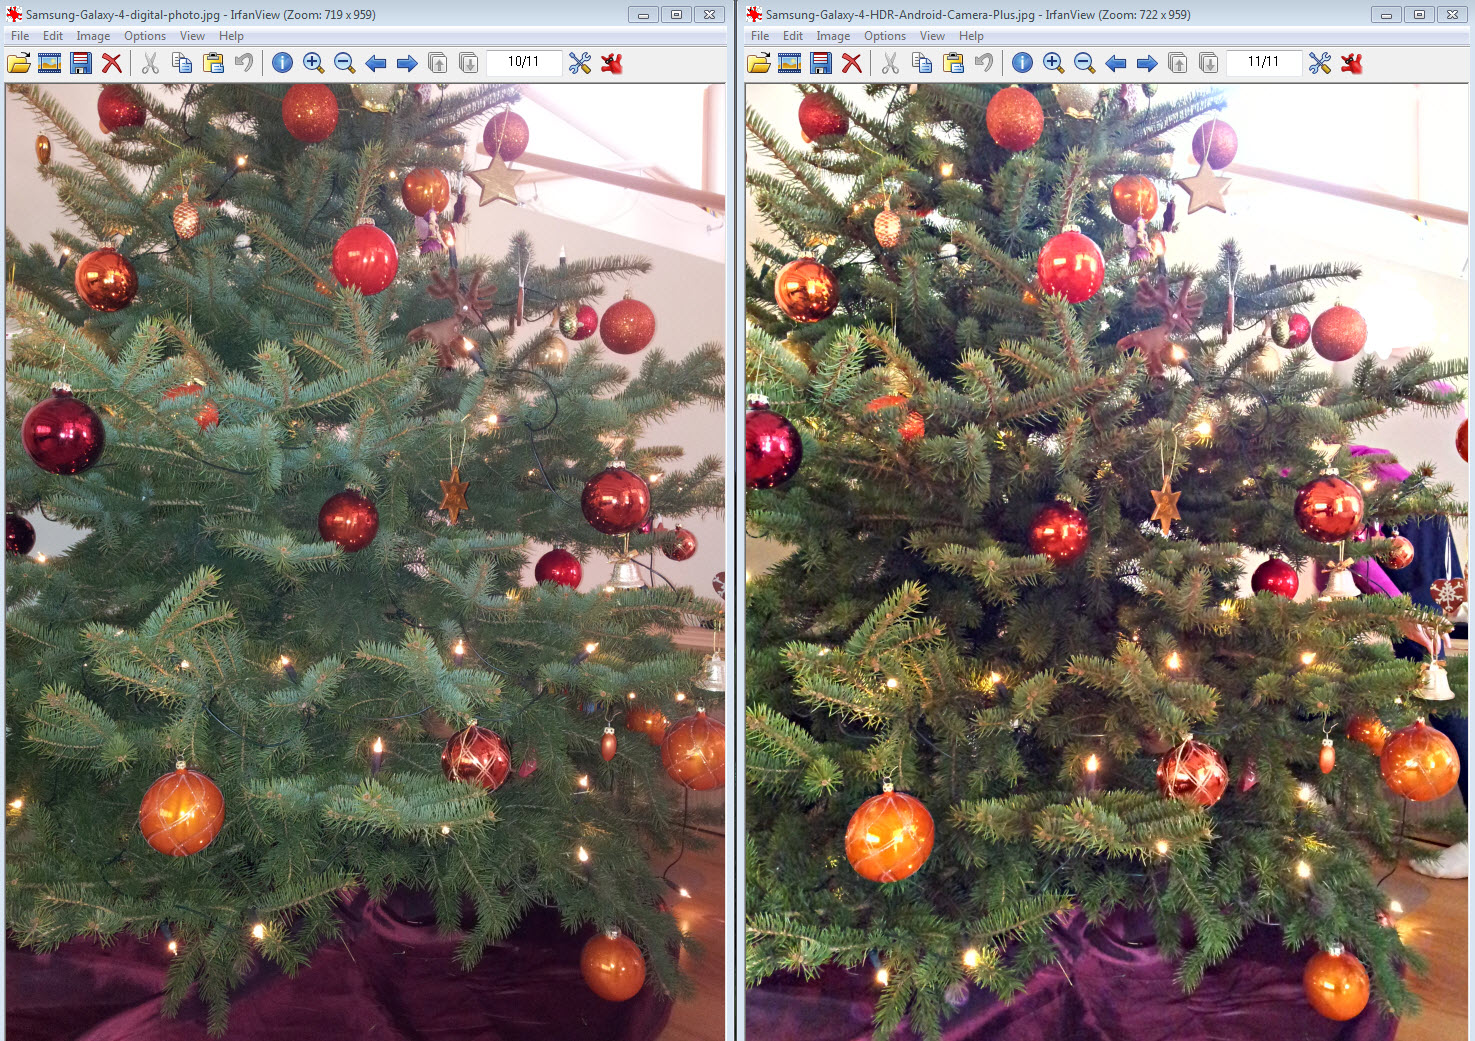 HDR Android Comparison Picture4